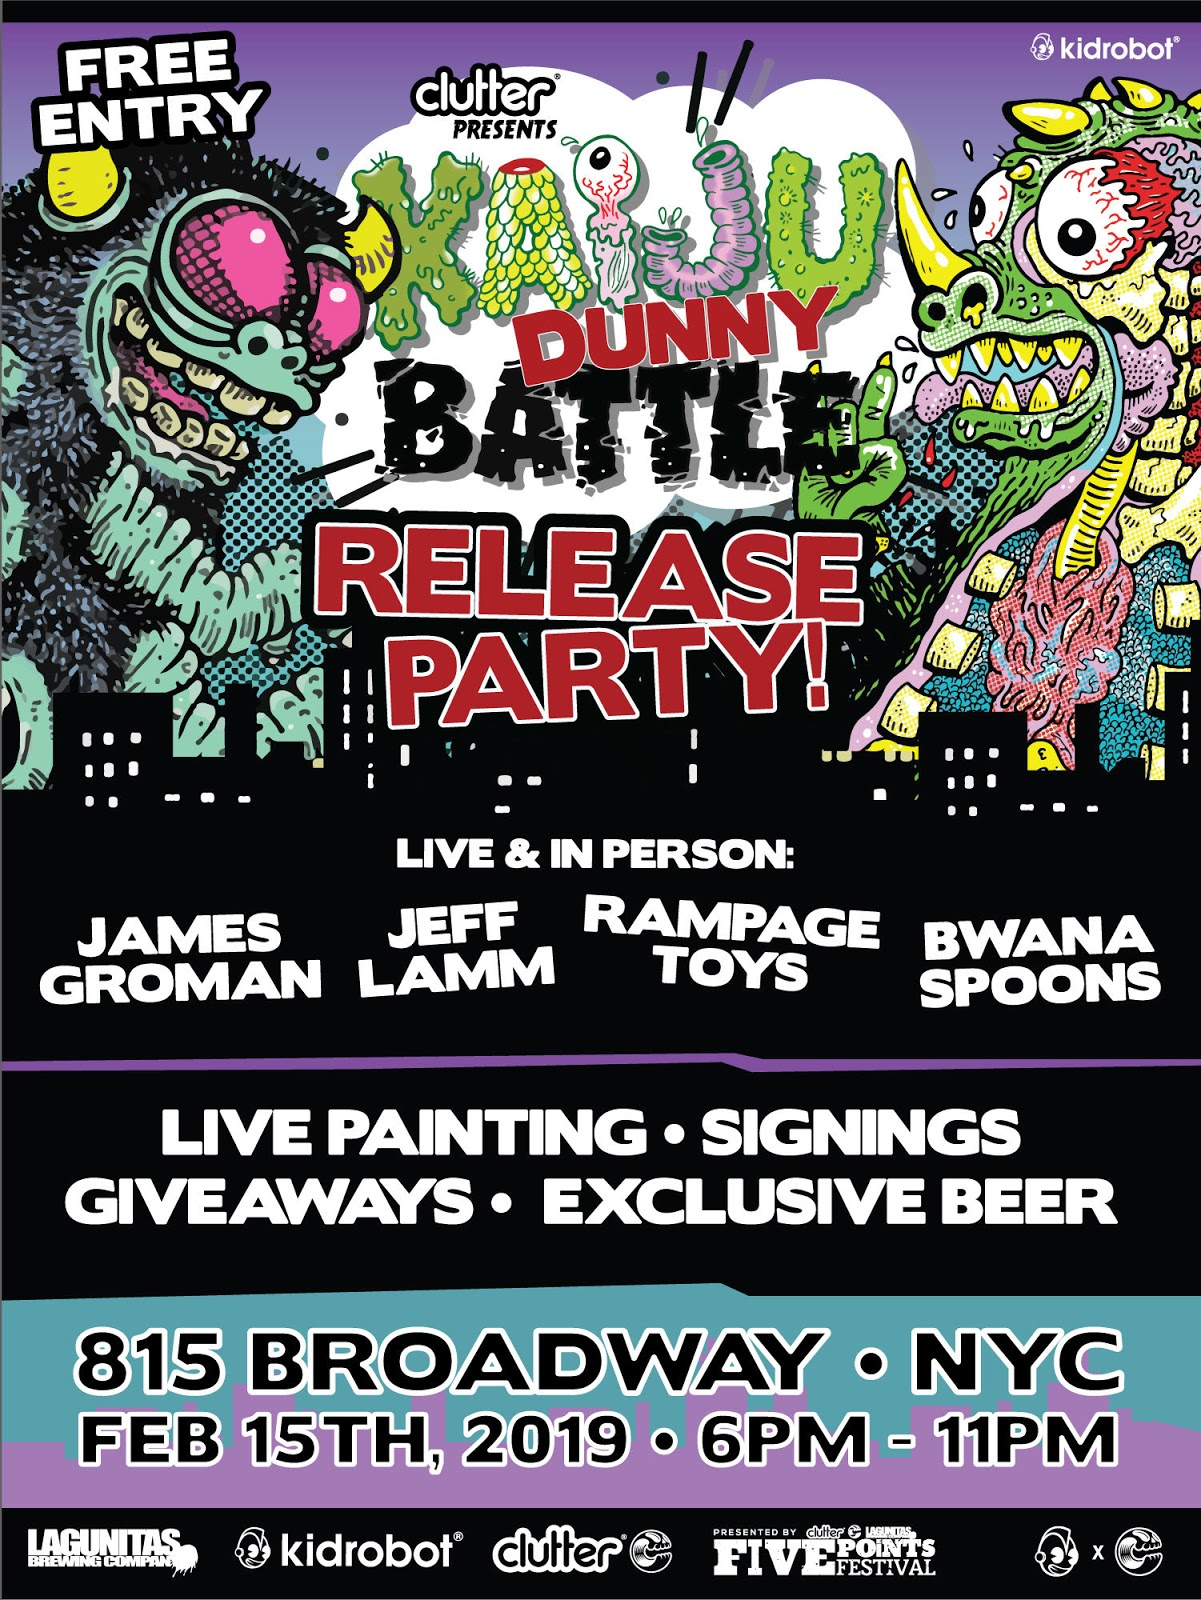 e9bb07cc0 Five Points Festival is hosting 2 pop-up events later this coming week. The  first on is this Friday, February 15th which is the Kaiju Dunny Battle  Release ...